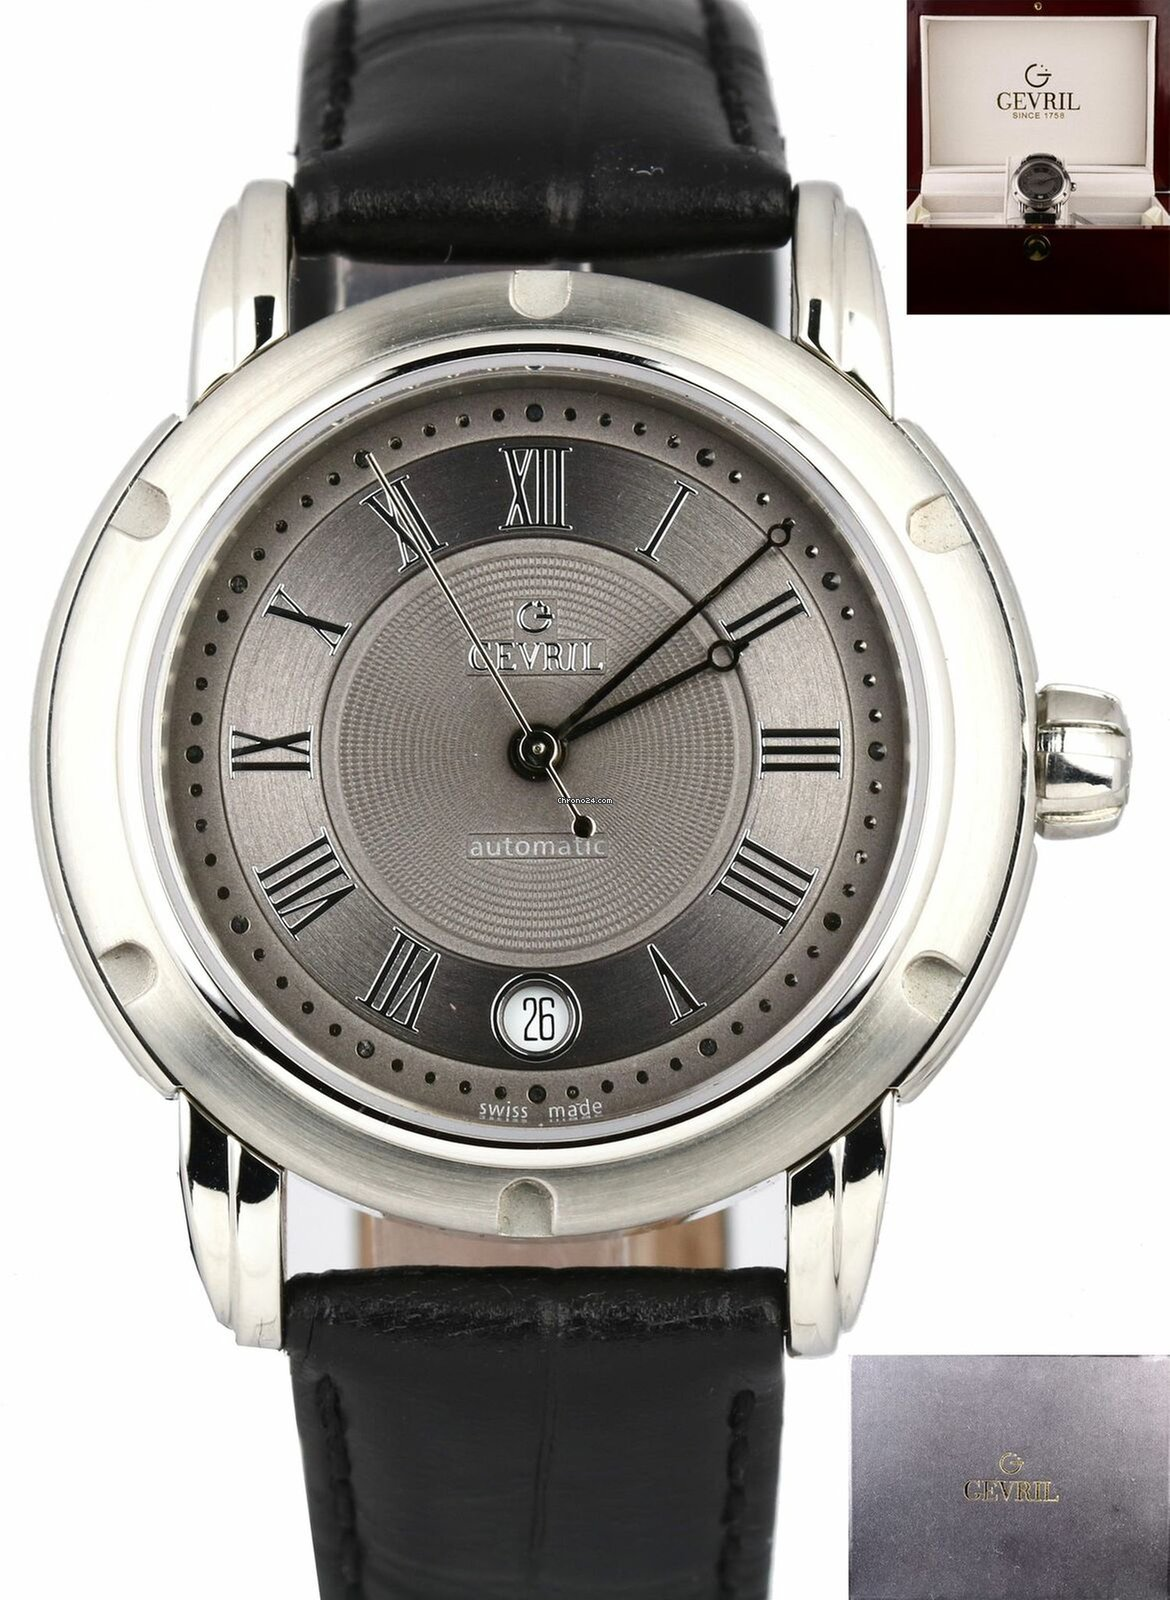 8e2a6715115e Gevril Stainless Steel Roman Numeral Gray Dial Date Leather... for $498 for  sale from a Trusted Seller on Chrono24